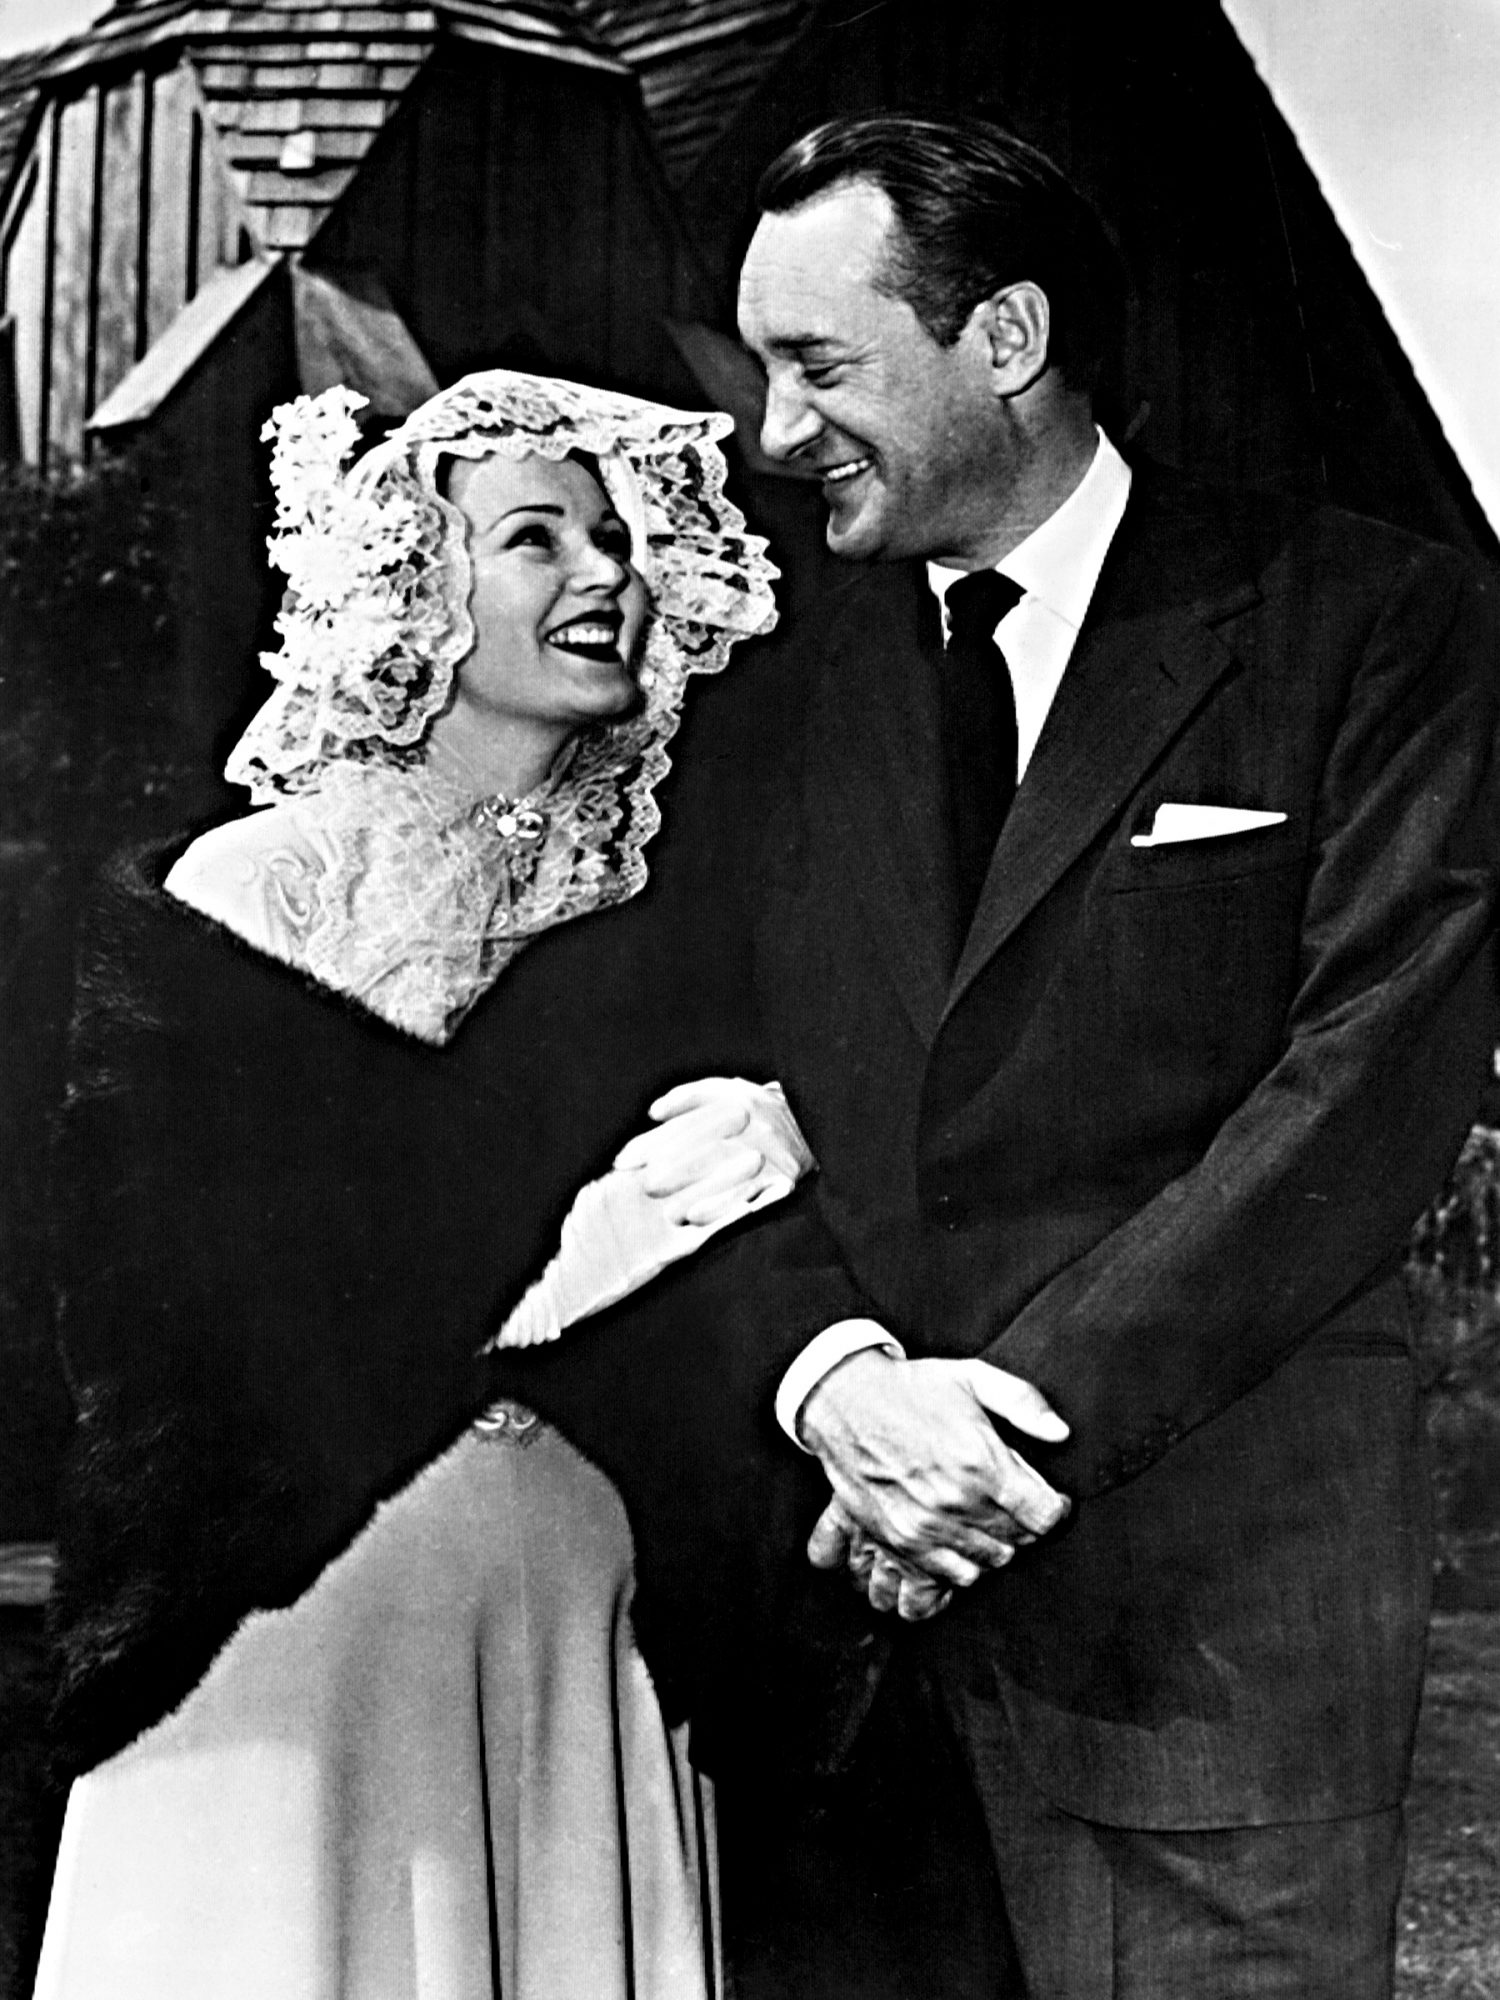 ZSA ZSA GABOR and GEORGE SANDERS, following their marriage in Las Vegas, Nevada, April 2, 1949.